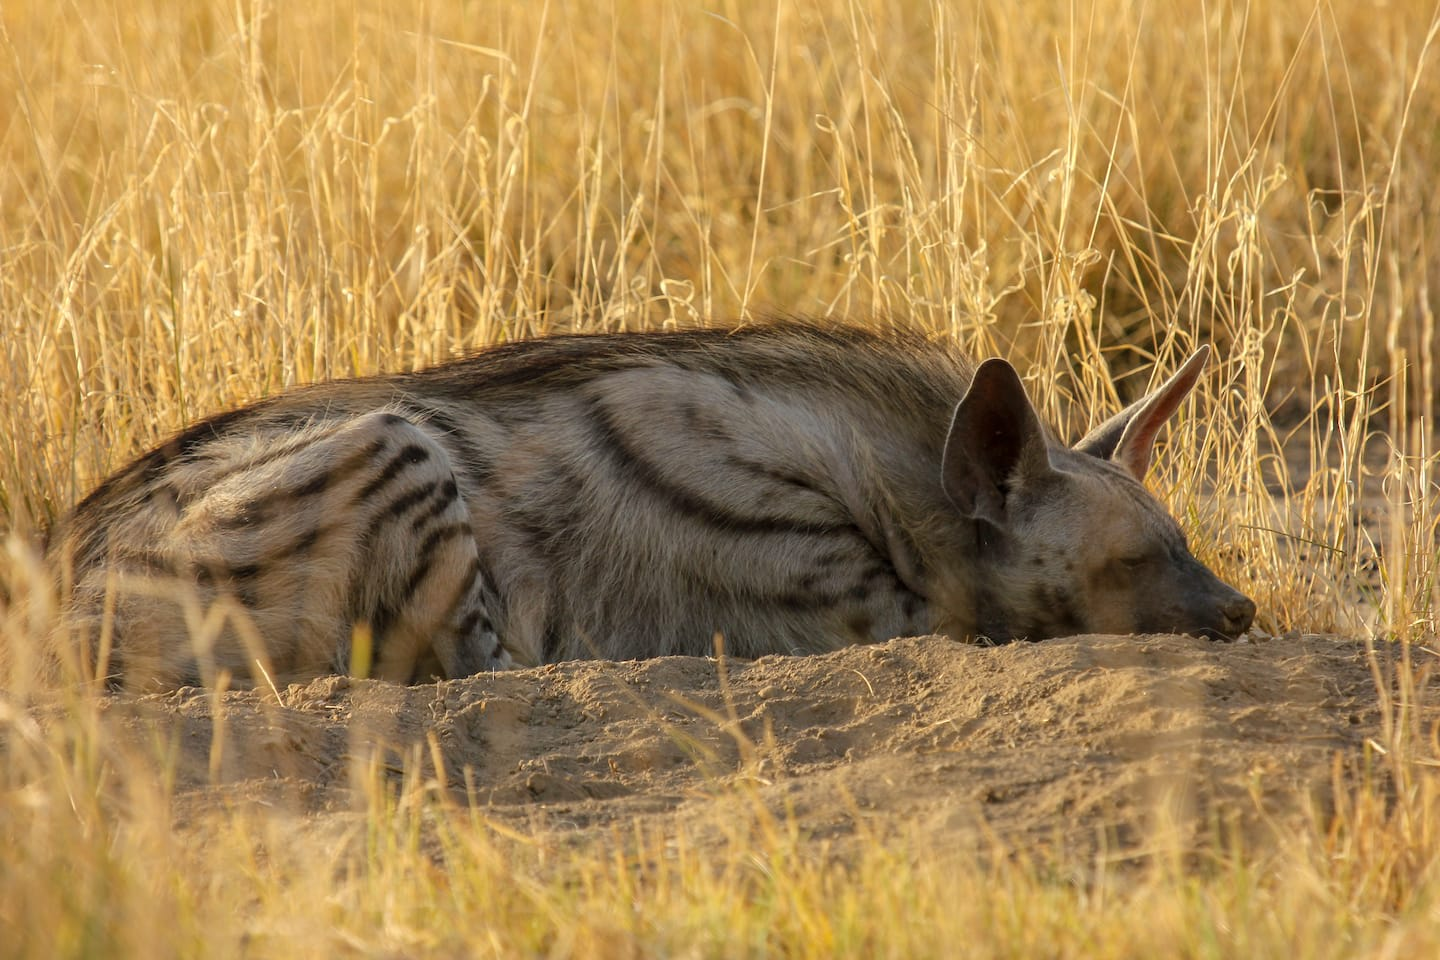 The striped hyena is a nocturnal scavenger and hunter. During the day it usually stays hidden or rests — like this striped hyena that is basking in the morning sun outside its burrow. Photo: Vickey Chauhan/Shutterstock